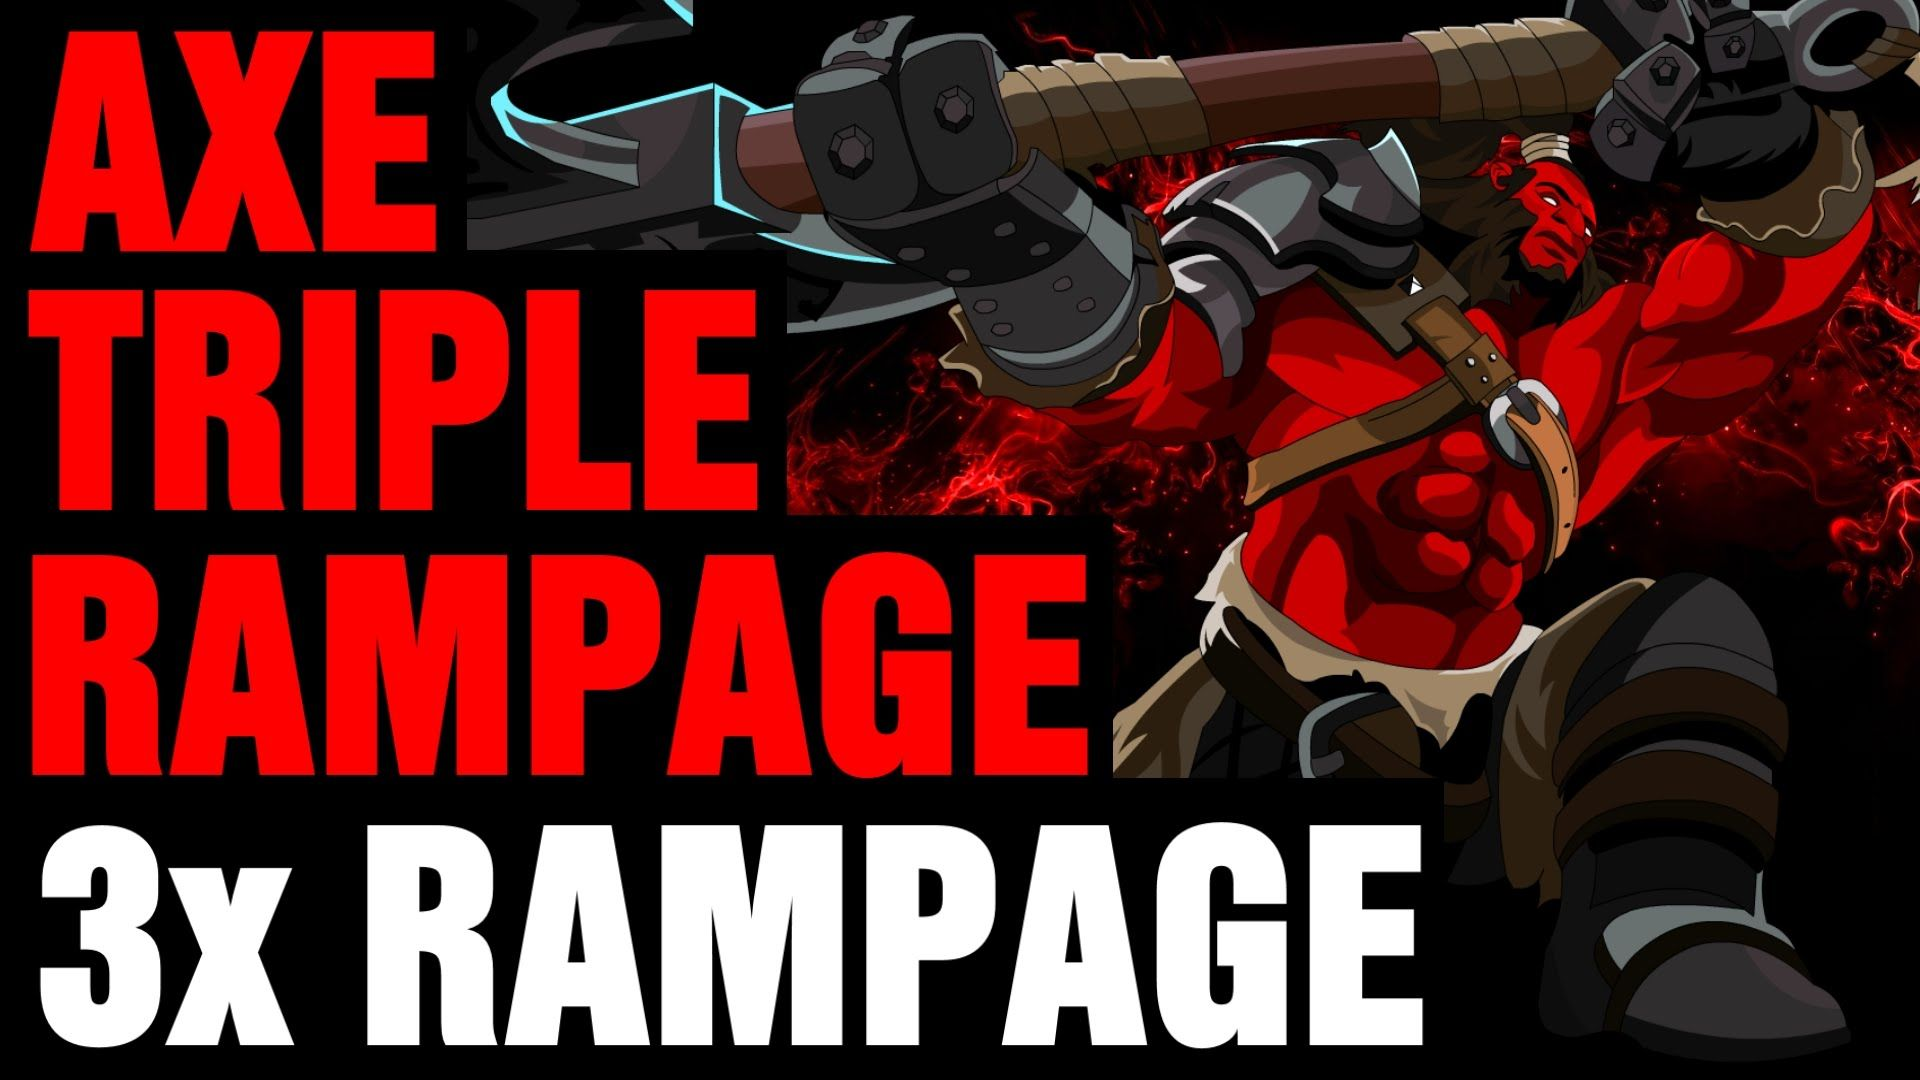 Pin by Dota Element on Dota 2 | Pinterest | Axe and Ds